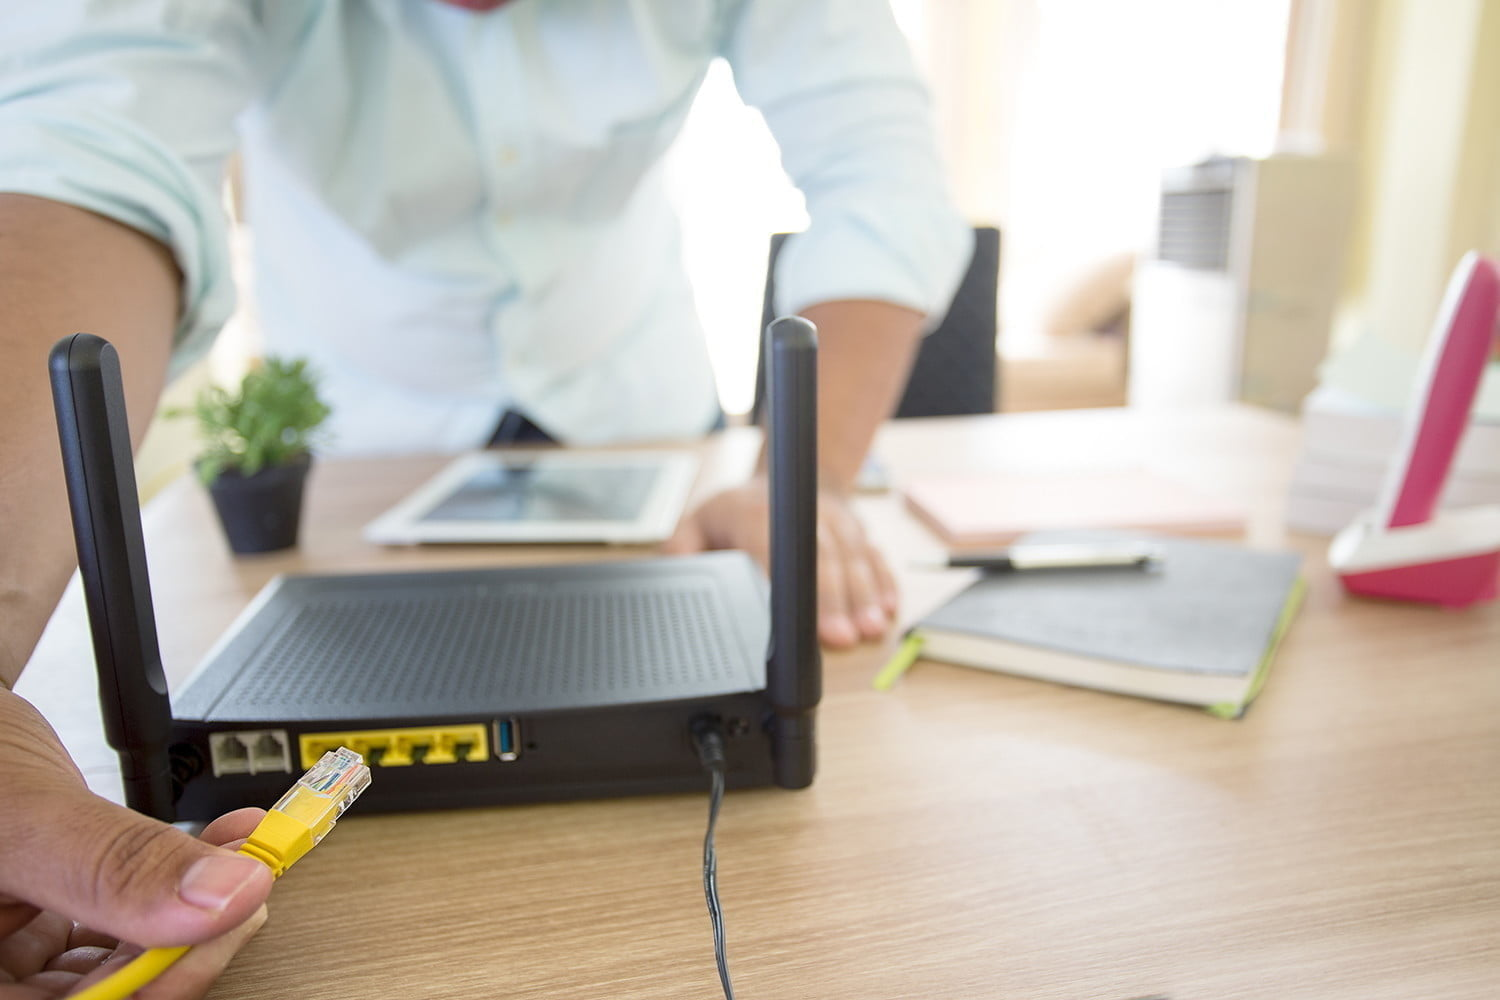 A person connects an ethernet cable to the back of a router | How to know the router's IP